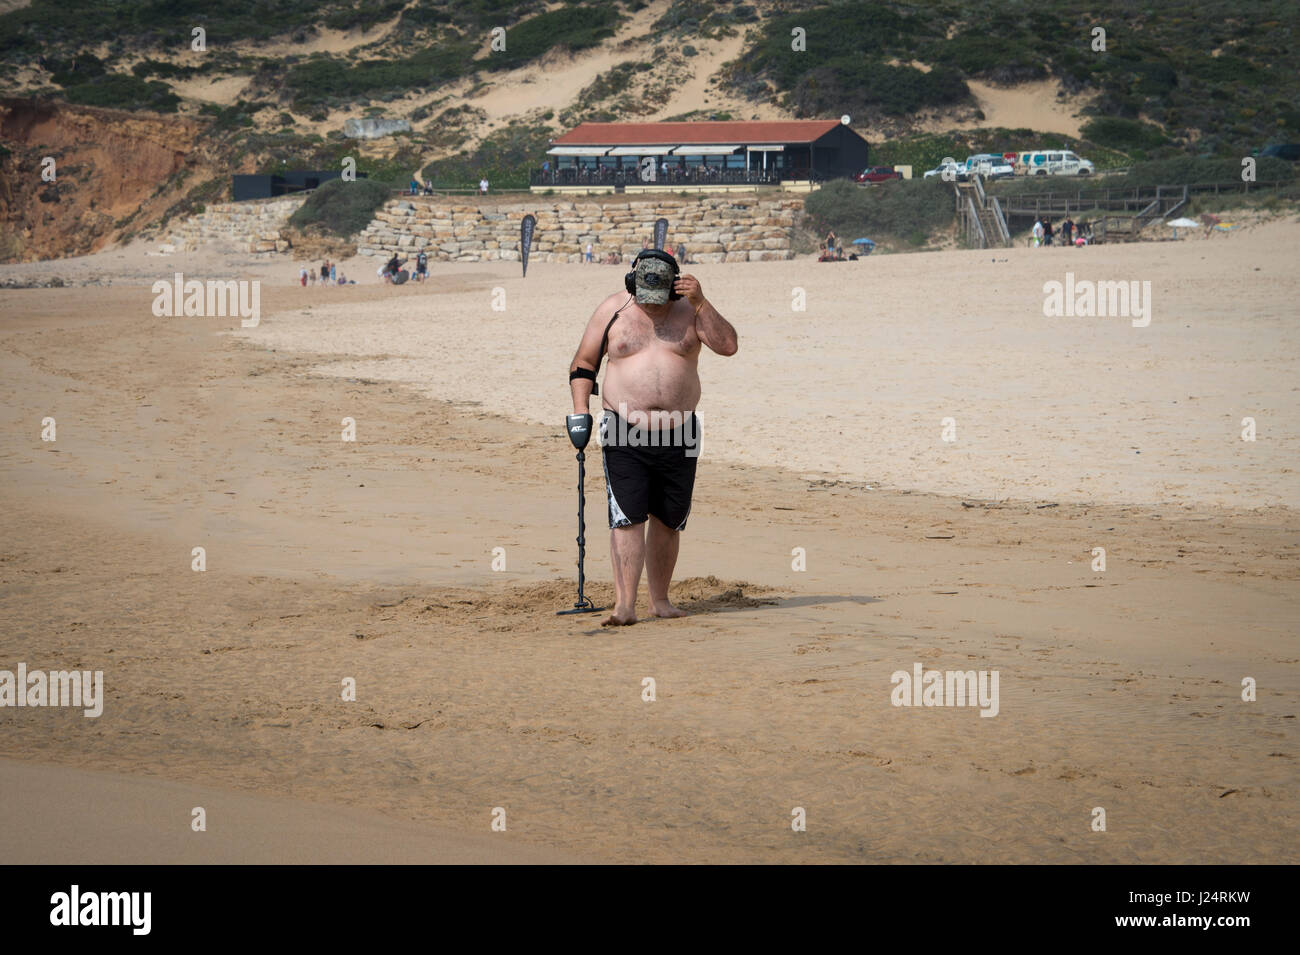 Man on a beach with a metal detector - Stock Image